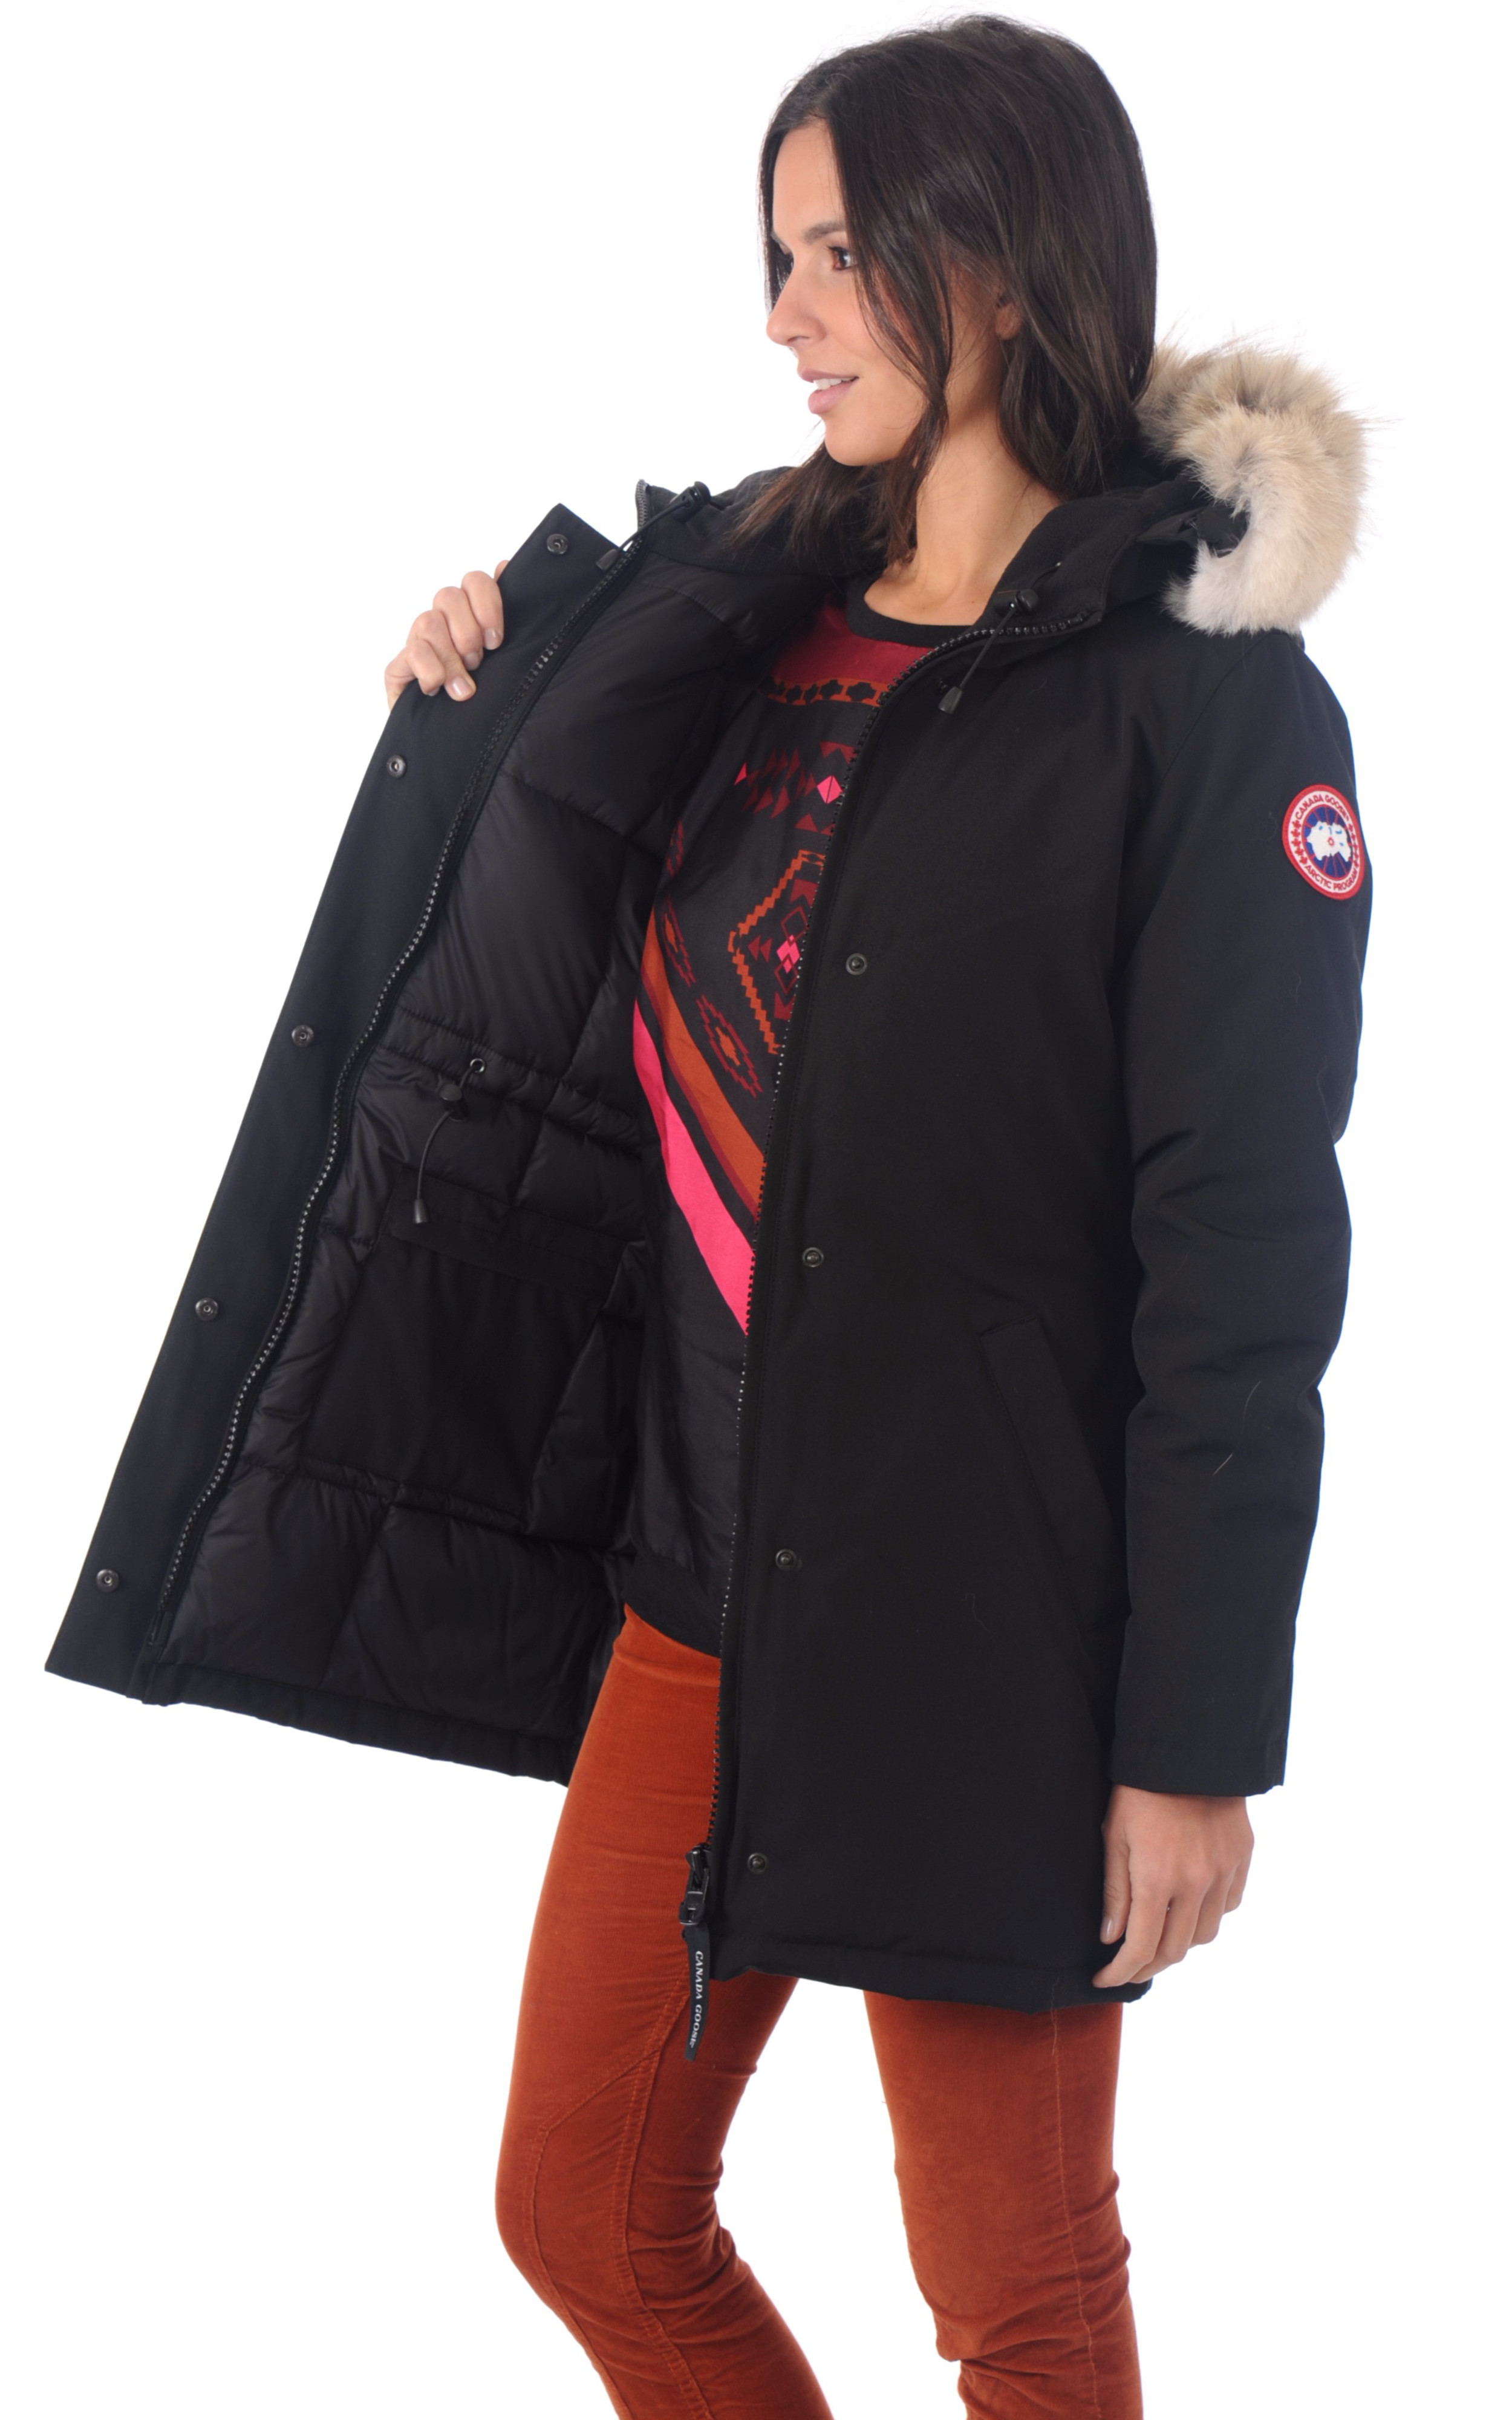 canada goose paiement 4 fois canada goose kids outlet shop. Black Bedroom Furniture Sets. Home Design Ideas